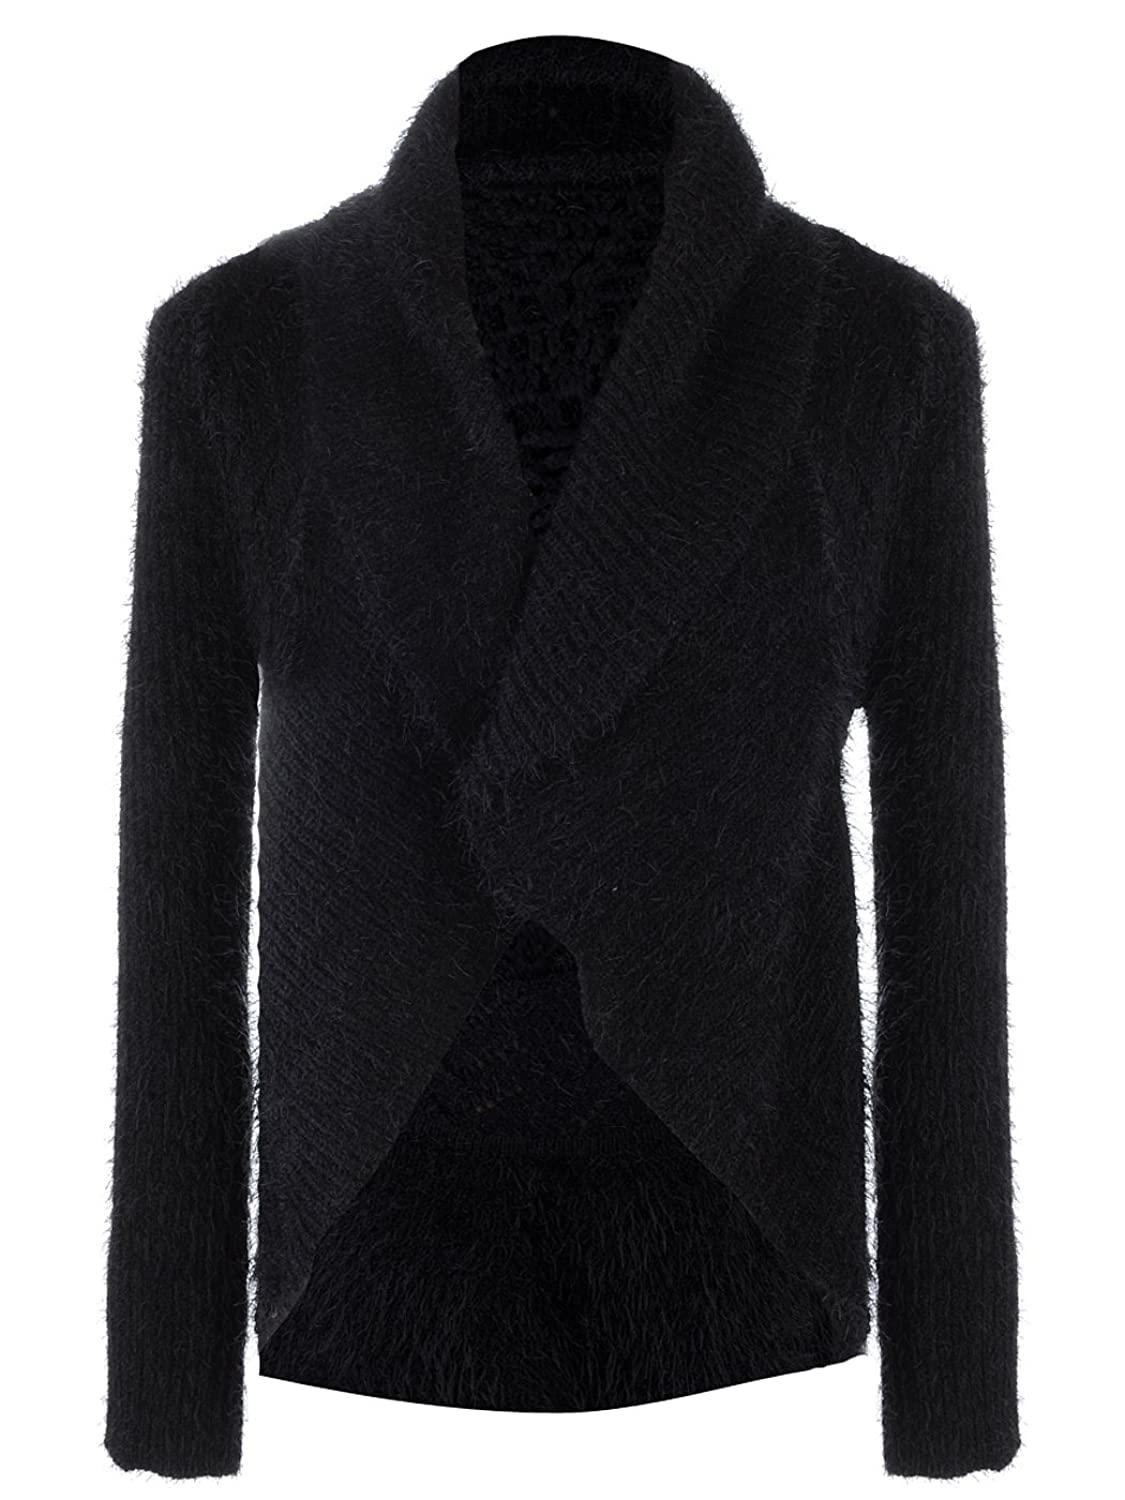 Anna Kaci S/M Fit Womens Classic Long Collared Buttonless Cardigan Black